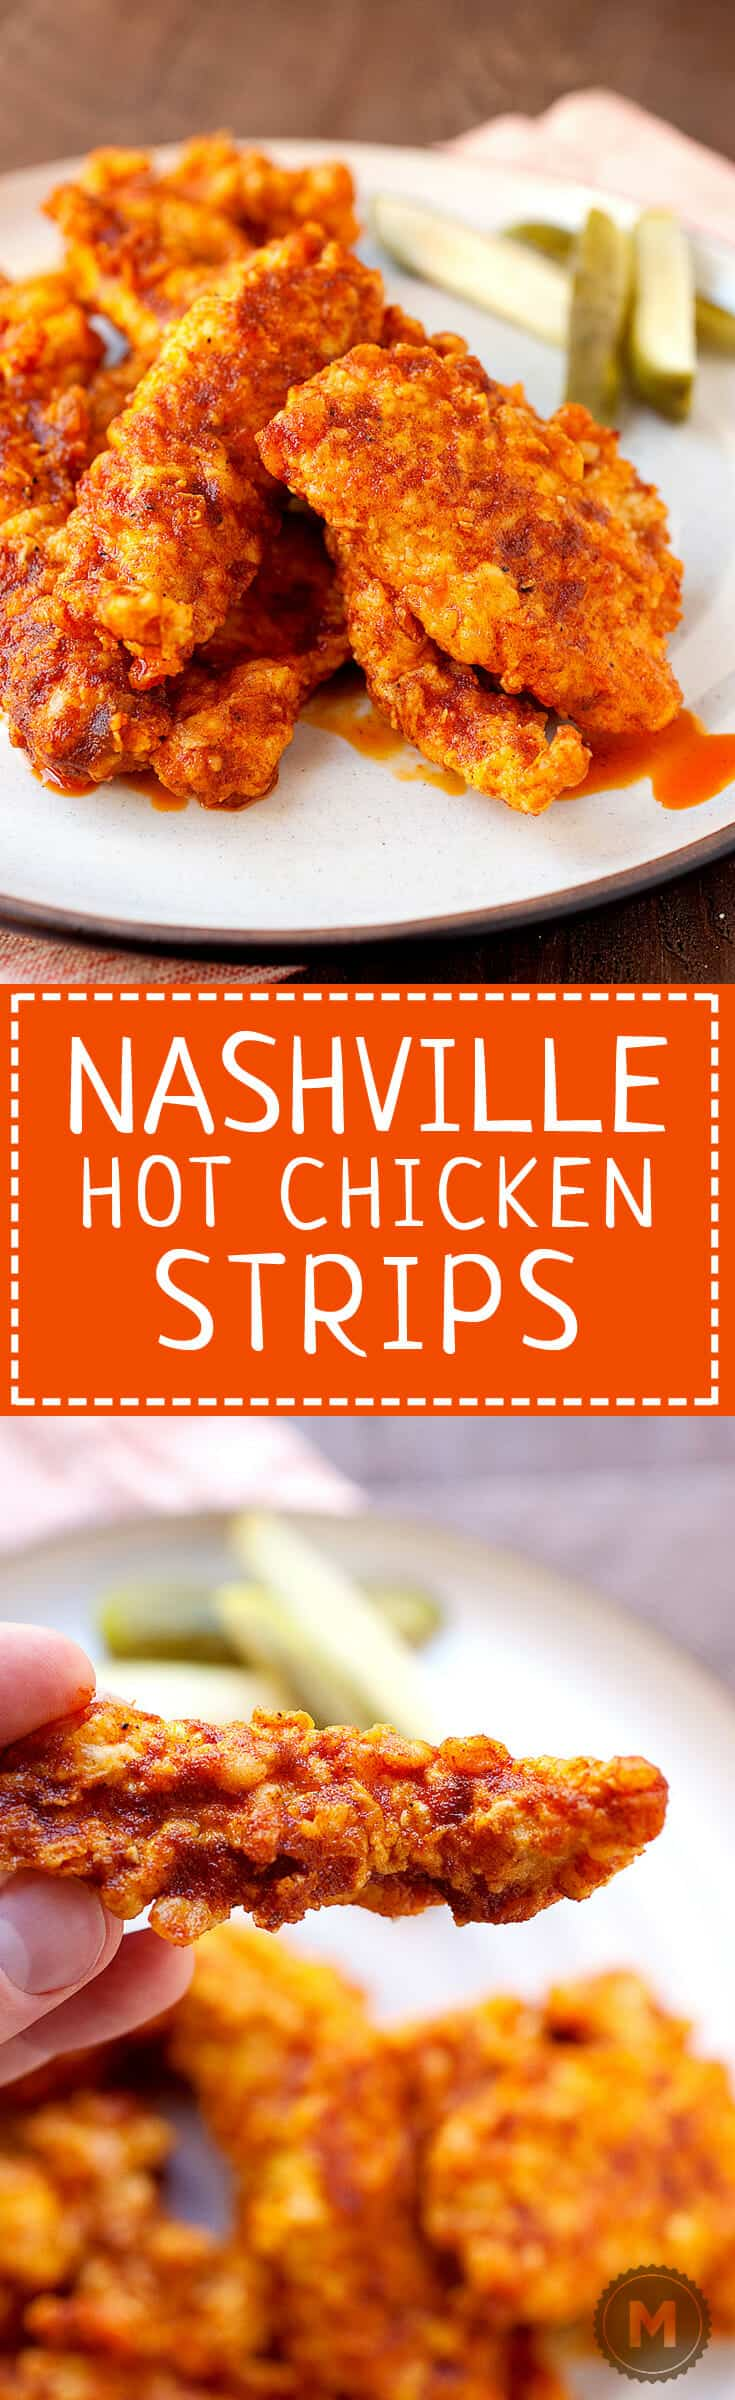 Nashville Hot Chicken Strips: 🍗 🔥 Traditional Nashville hot chicken is all the rage these days, but you don't have to go all the way to Tennessee to get it. Thanks to a simple (and dare-worthy) chili oil, you can make it at home! I like to make chicken strips with it, but you could use it on full pieces also! Get ready to sweat! | macheesmo.com